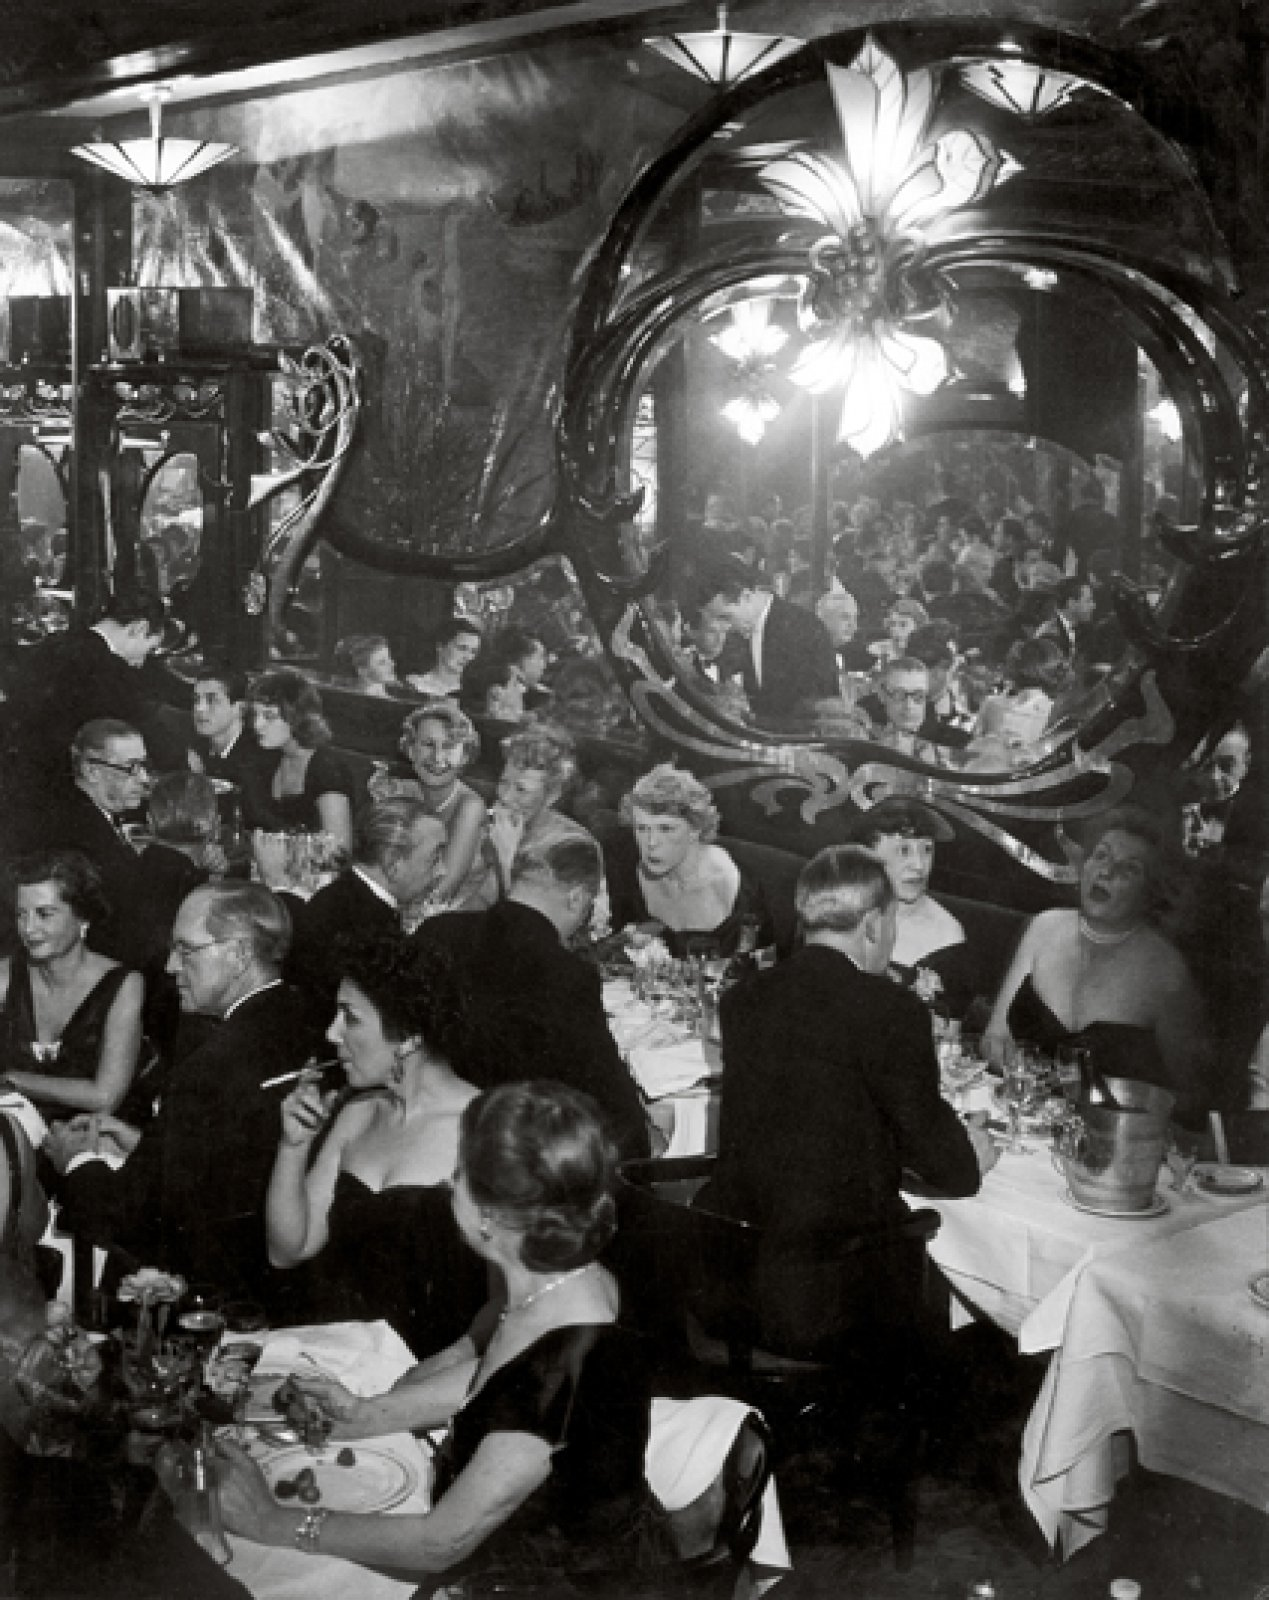 Gala Soirée at Maxim's, May 1949 © Estate Brassaï Succession, Paris